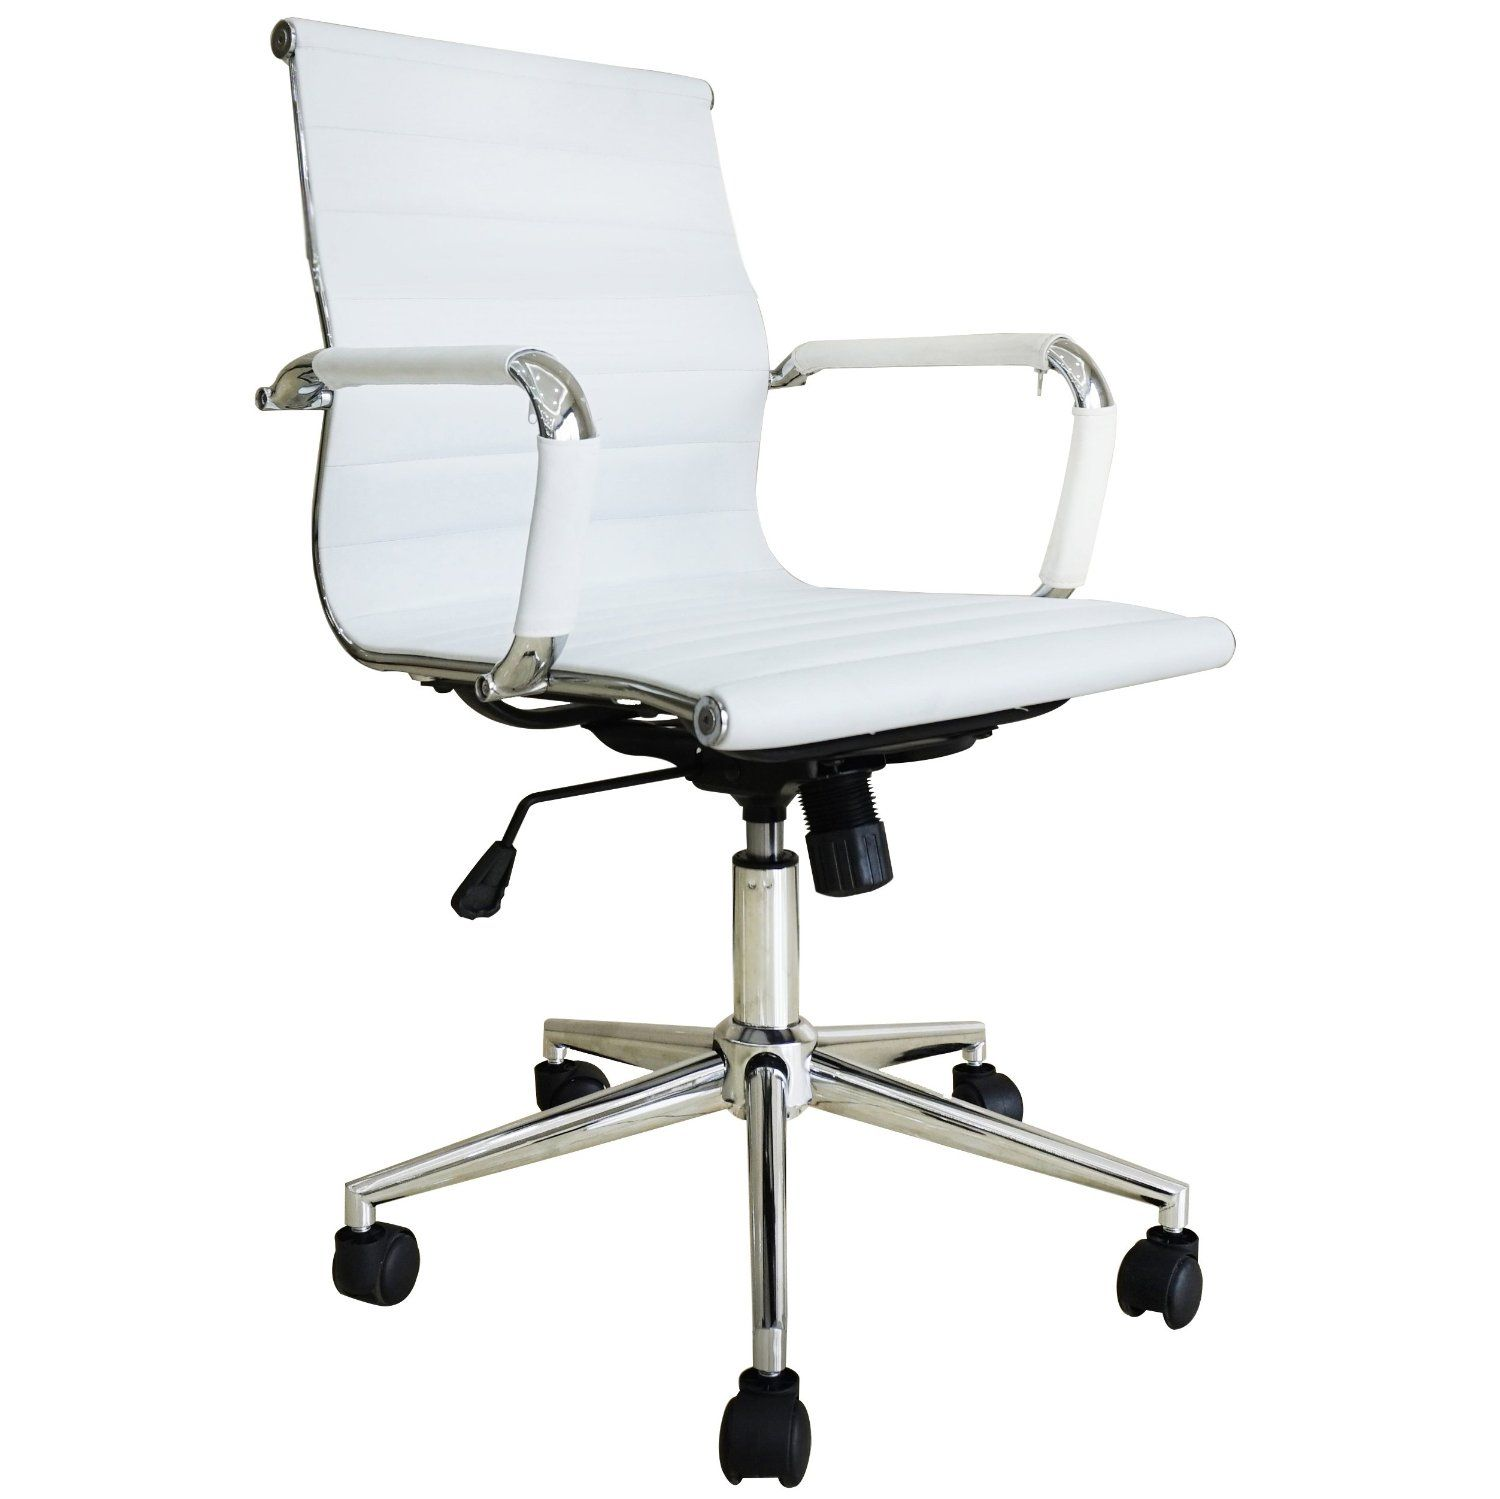 white mesh desk chair with arms